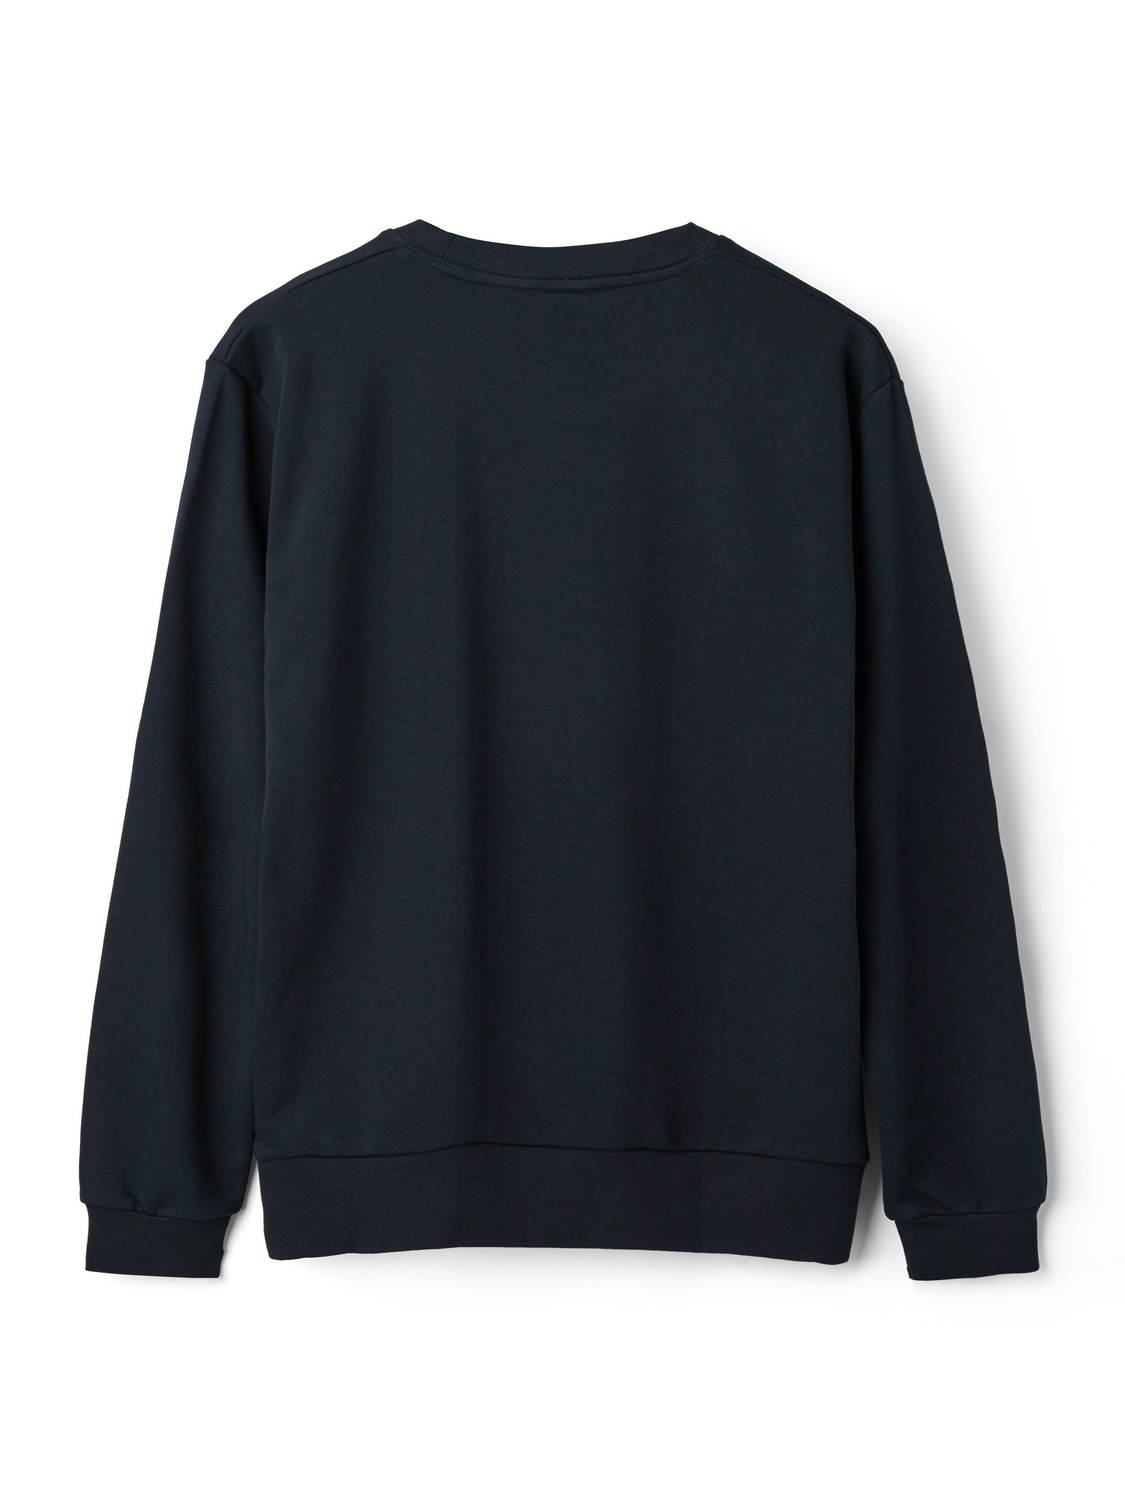 H2O sweat - Base Sweat O-neck navy | GATE 36 Hobro